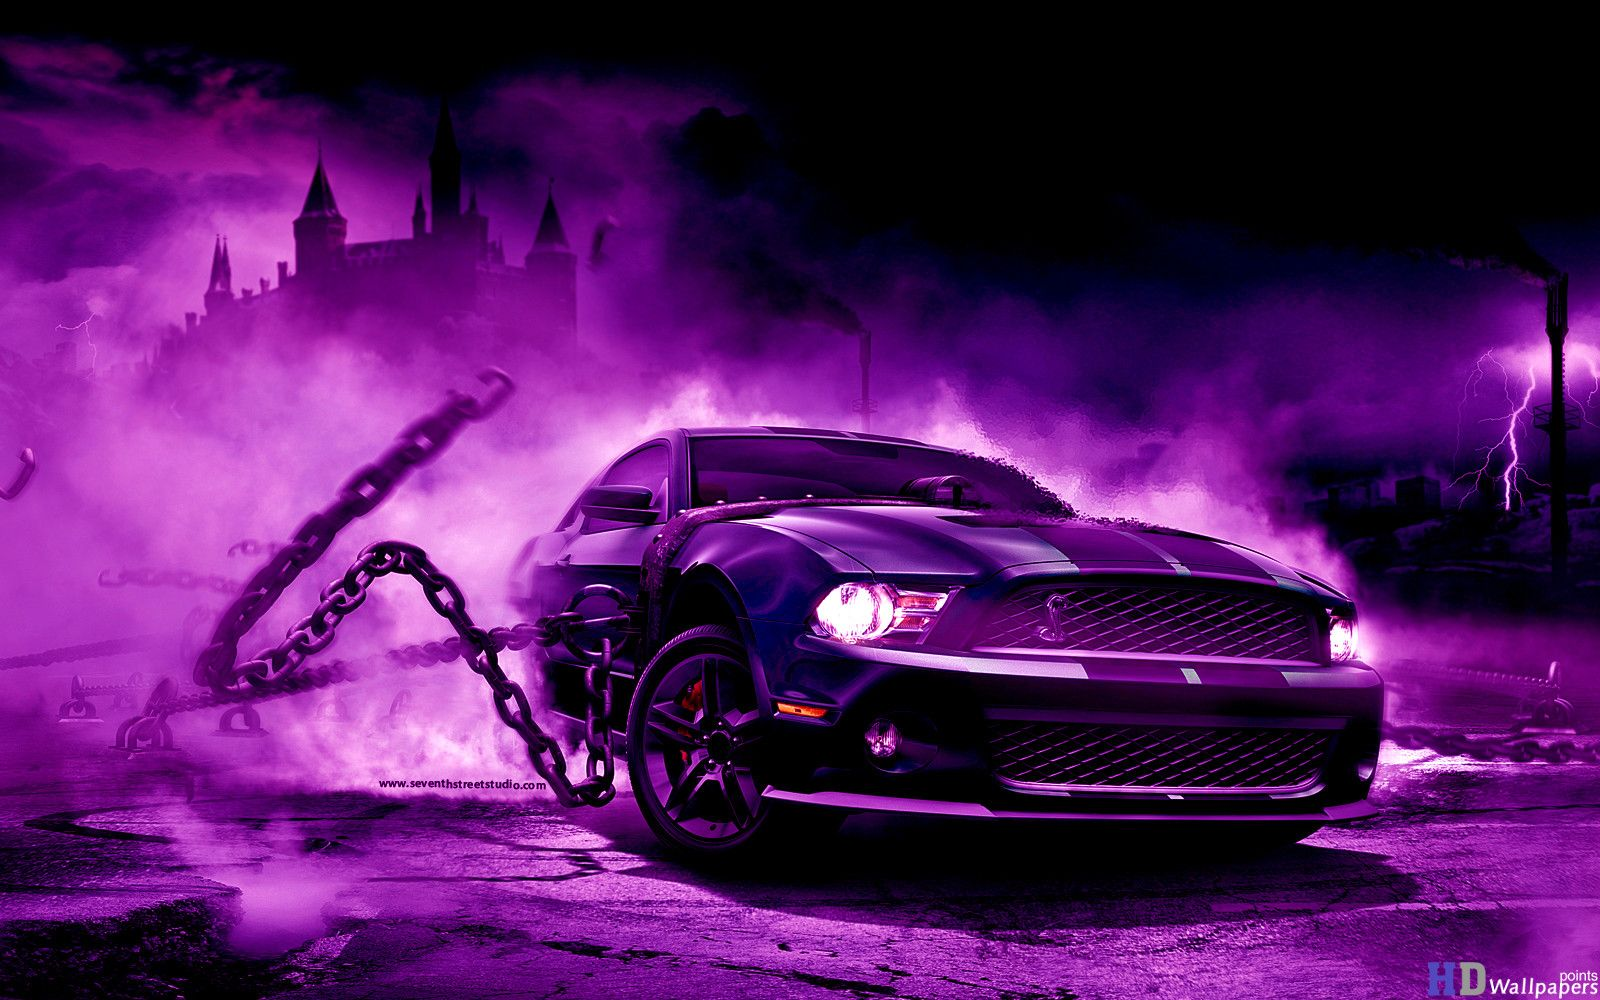 Cool car 3d wallpapers hd background desktop 14500 - Car desktop wallpaper ...